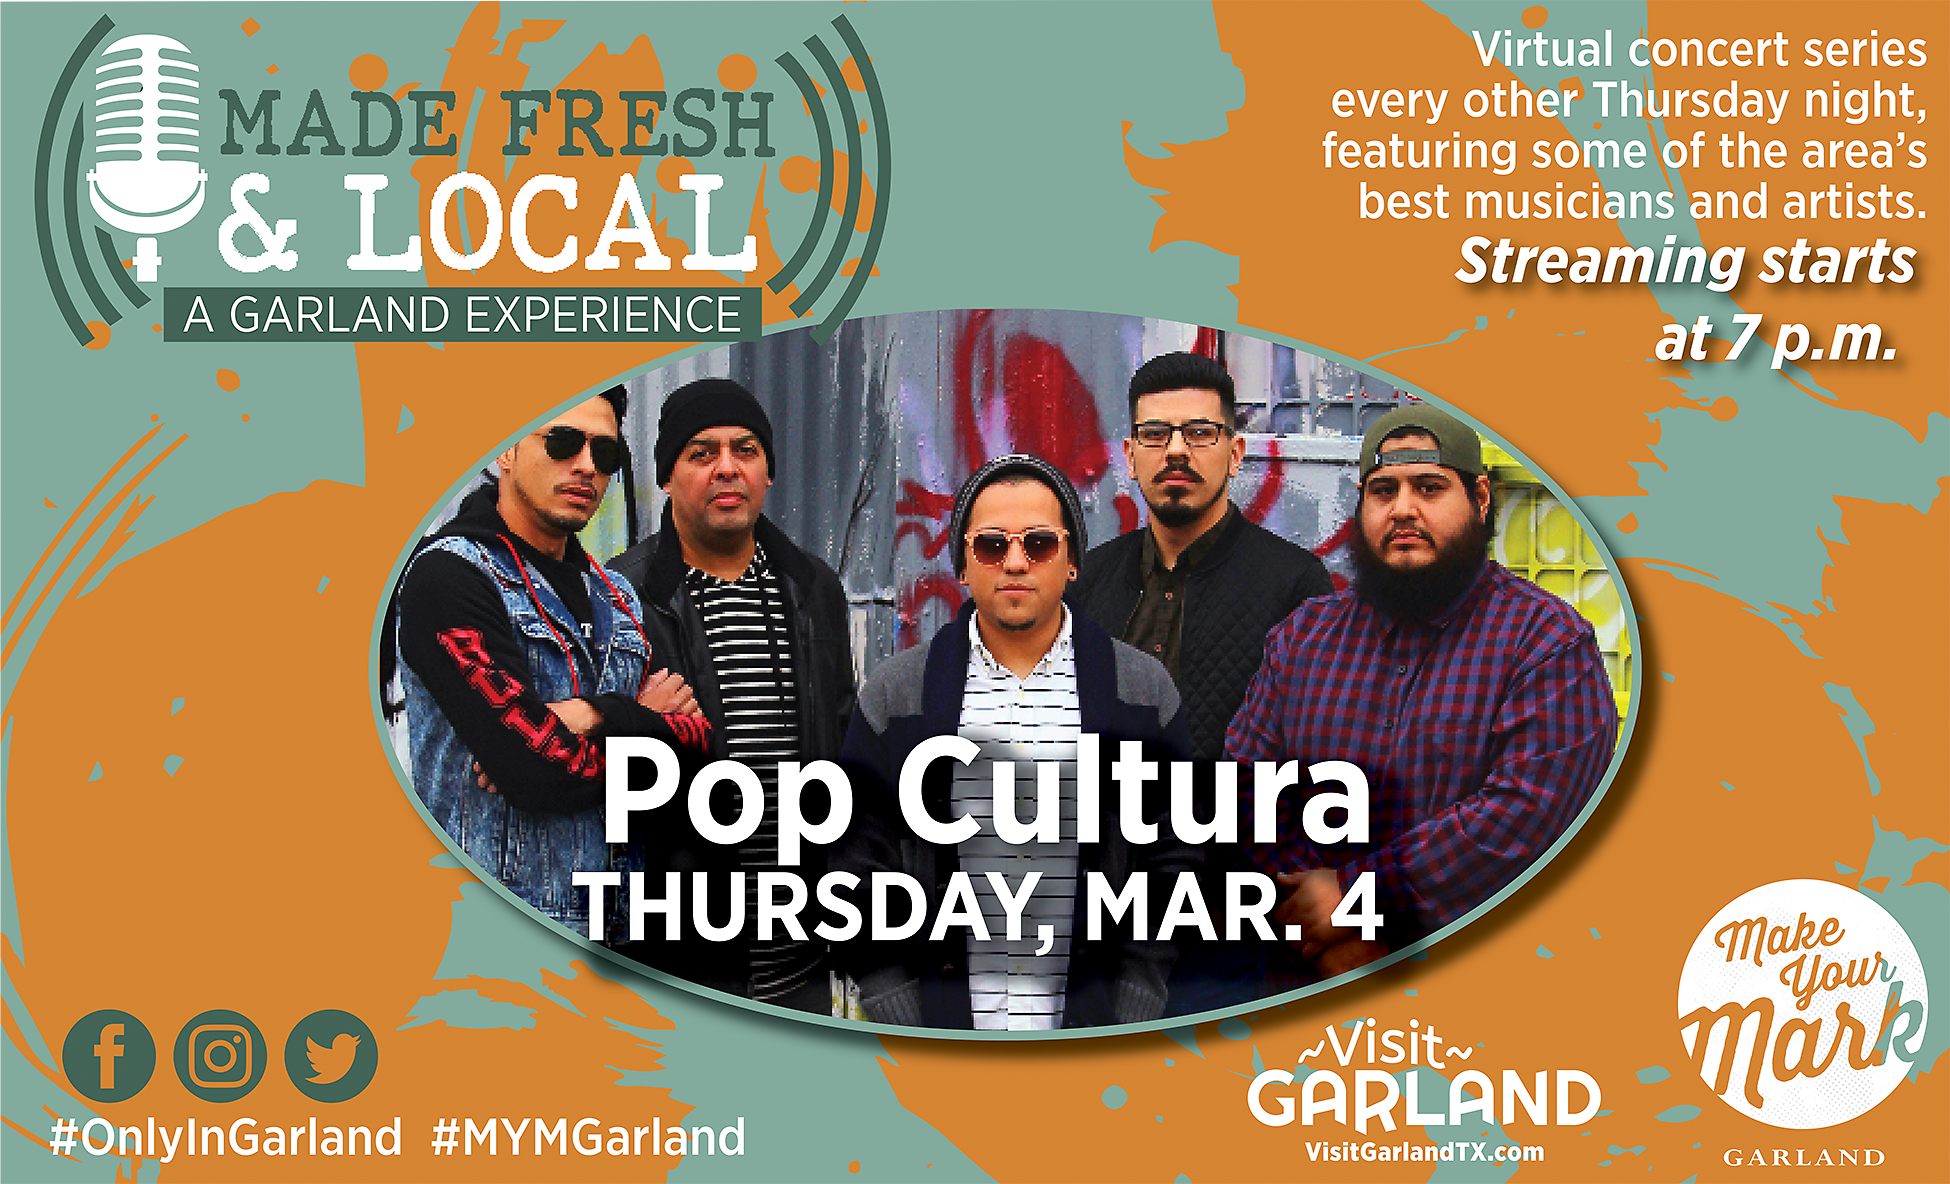 Made Fresh and Local_MAR 4 Pop Cultura